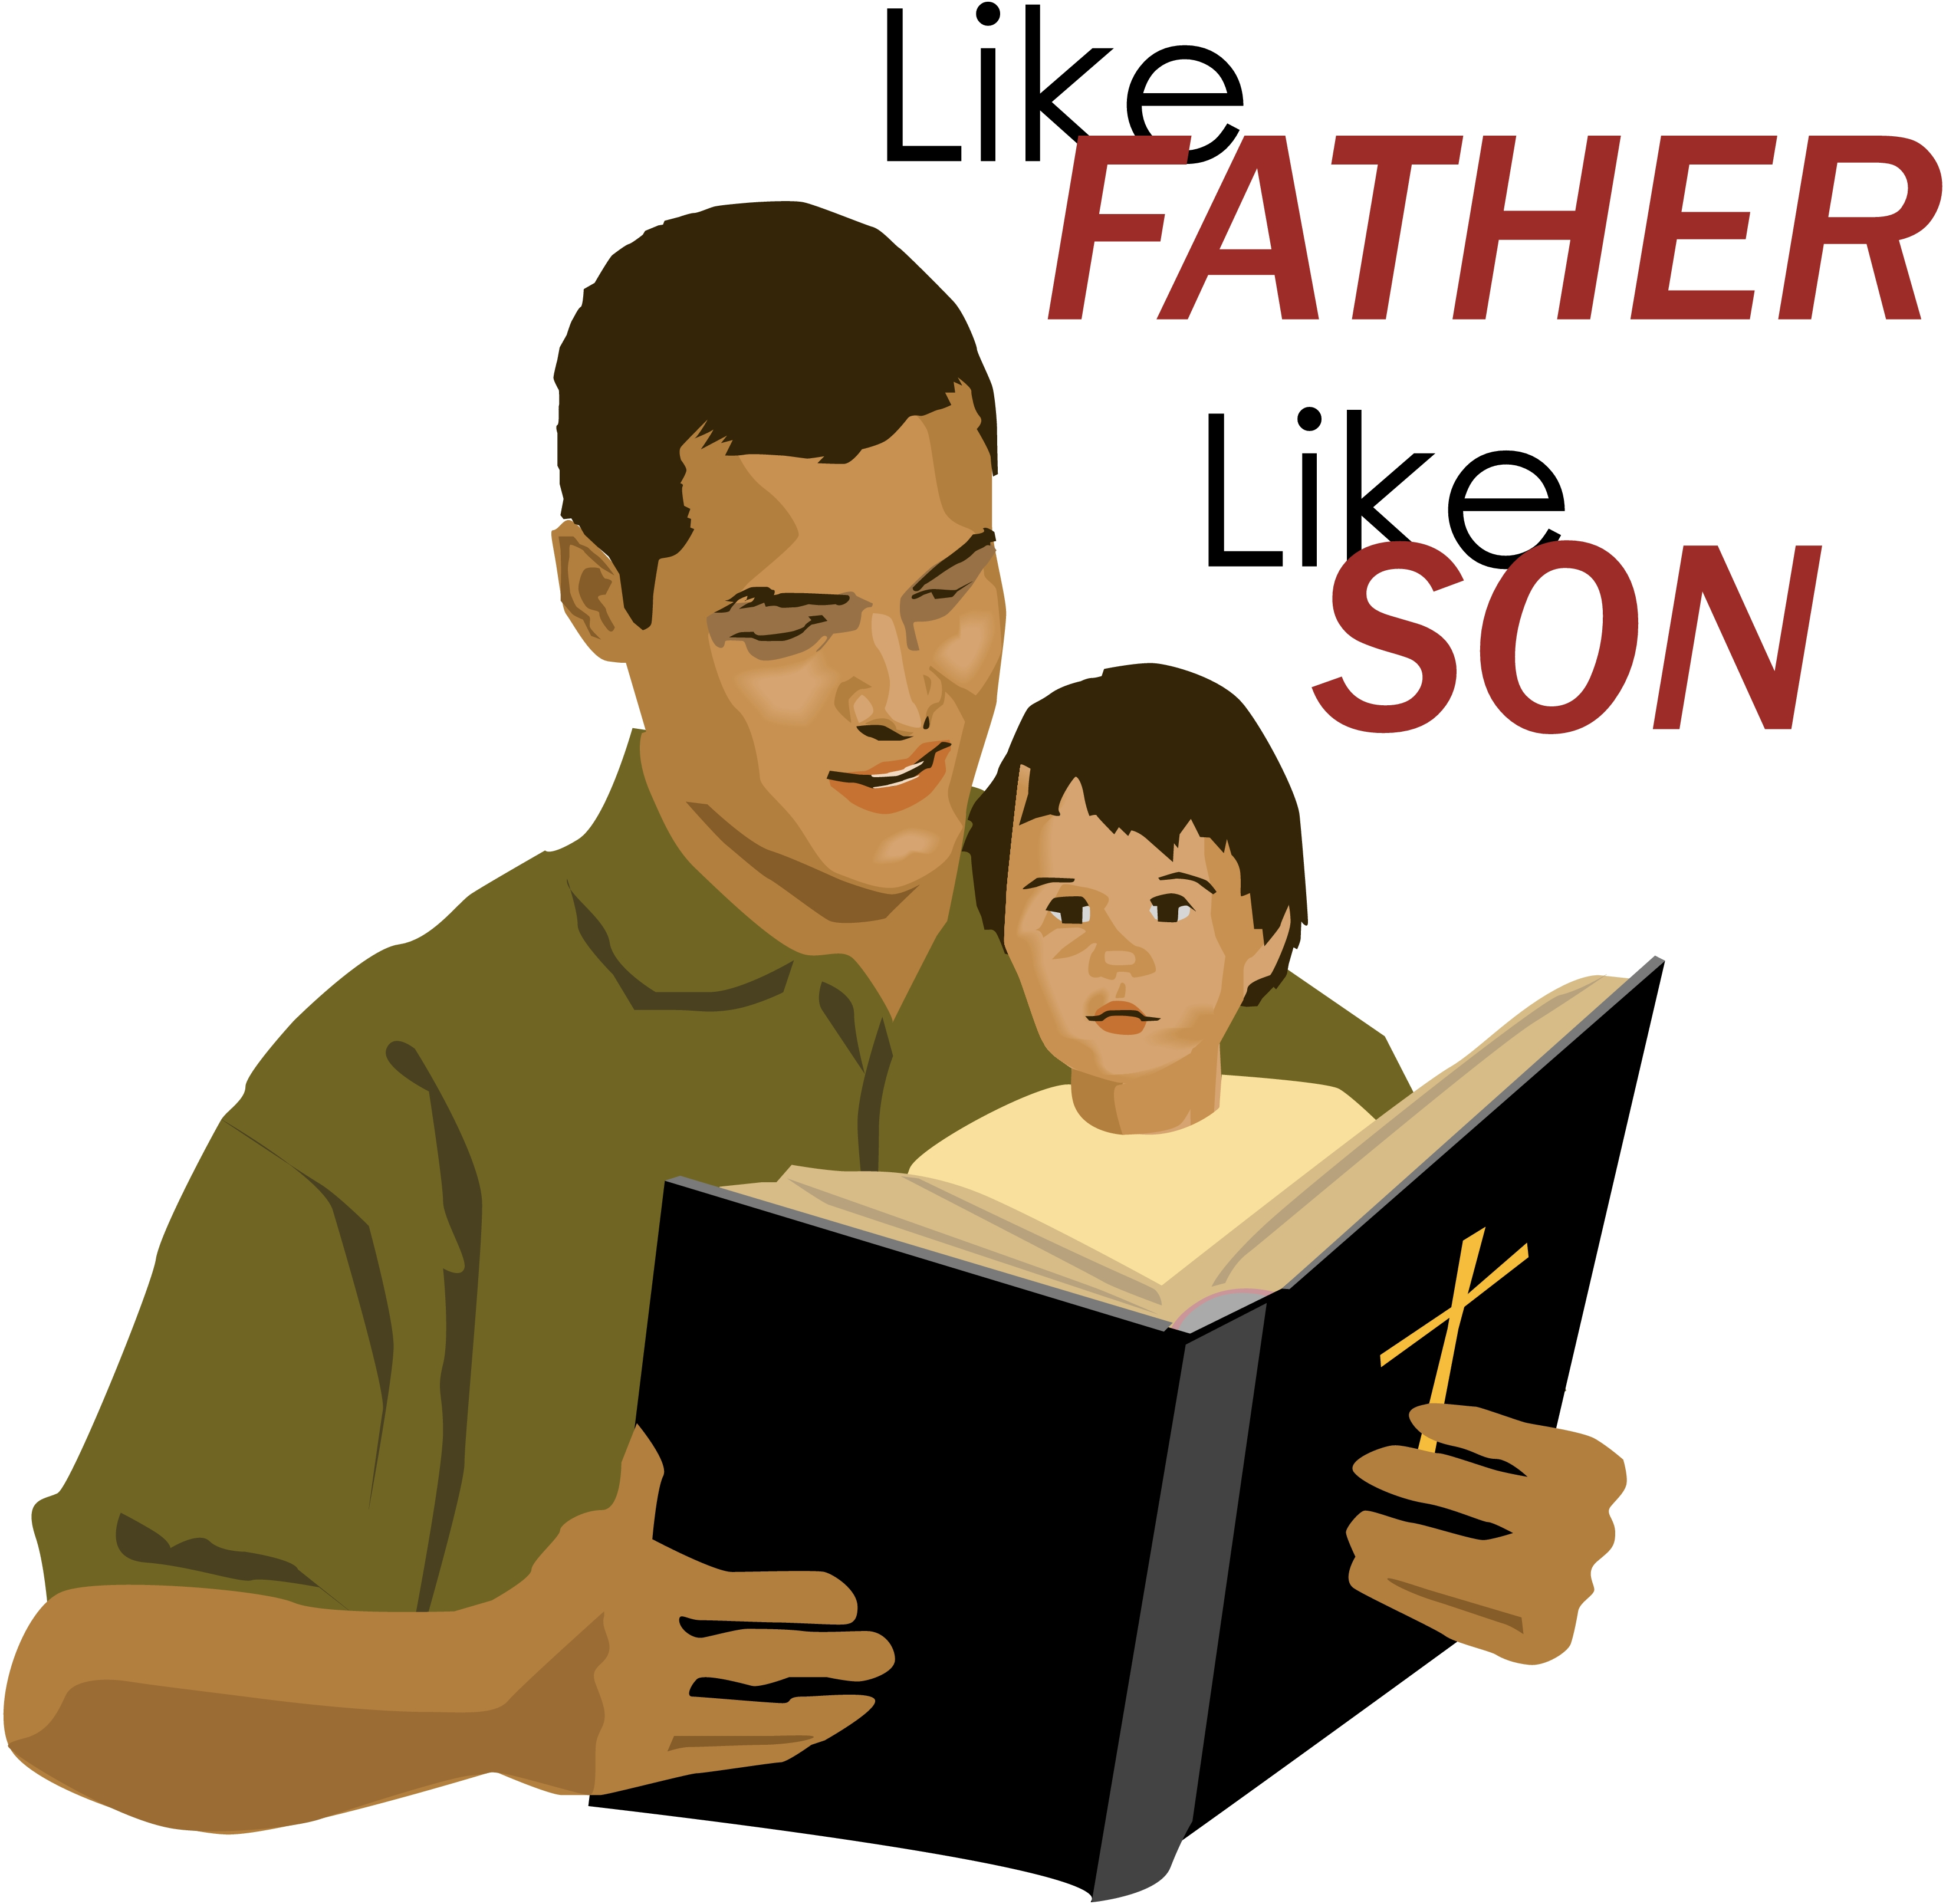 Like father like son clipart banner free download Like father like son clipart - ClipartFest banner free download